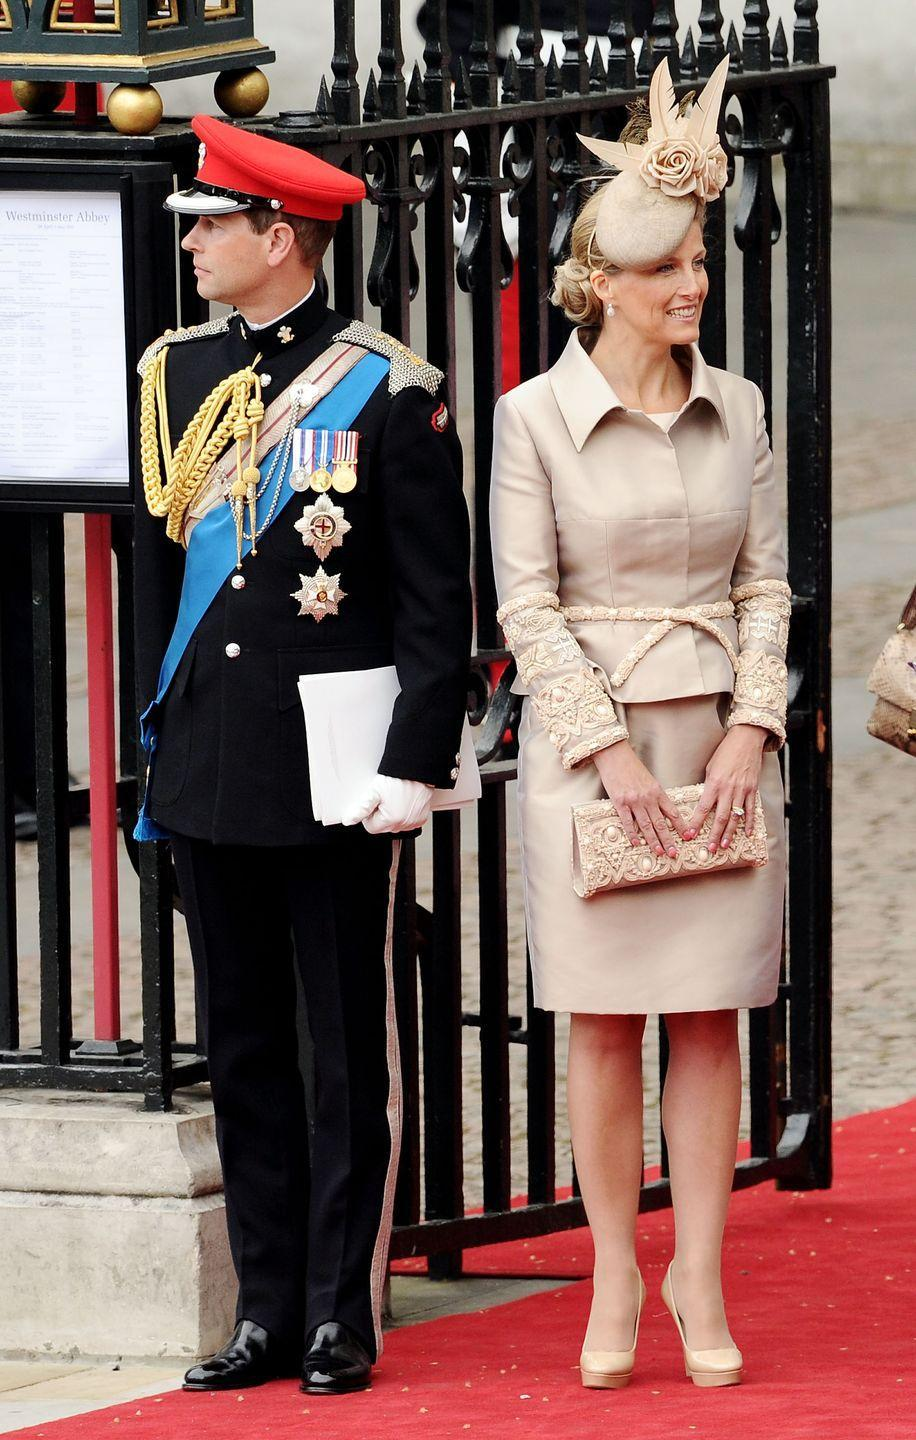 """<p>Sophie chose a neutral look for <a href=""""https://www.townandcountrymag.com/the-scene/weddings/g20052313/kate-middleton-prince-william-royal-wedding-2011-photos/"""" rel=""""nofollow noopener"""" target=""""_blank"""" data-ylk=""""slk:Will and Kate's royal wedding in 2011."""" class=""""link rapid-noclick-resp"""">Will and Kate's royal wedding in 2011. </a> Here she is alongside Prince Edward, who looked quite dashing in his military uniform for the big day.</p>"""